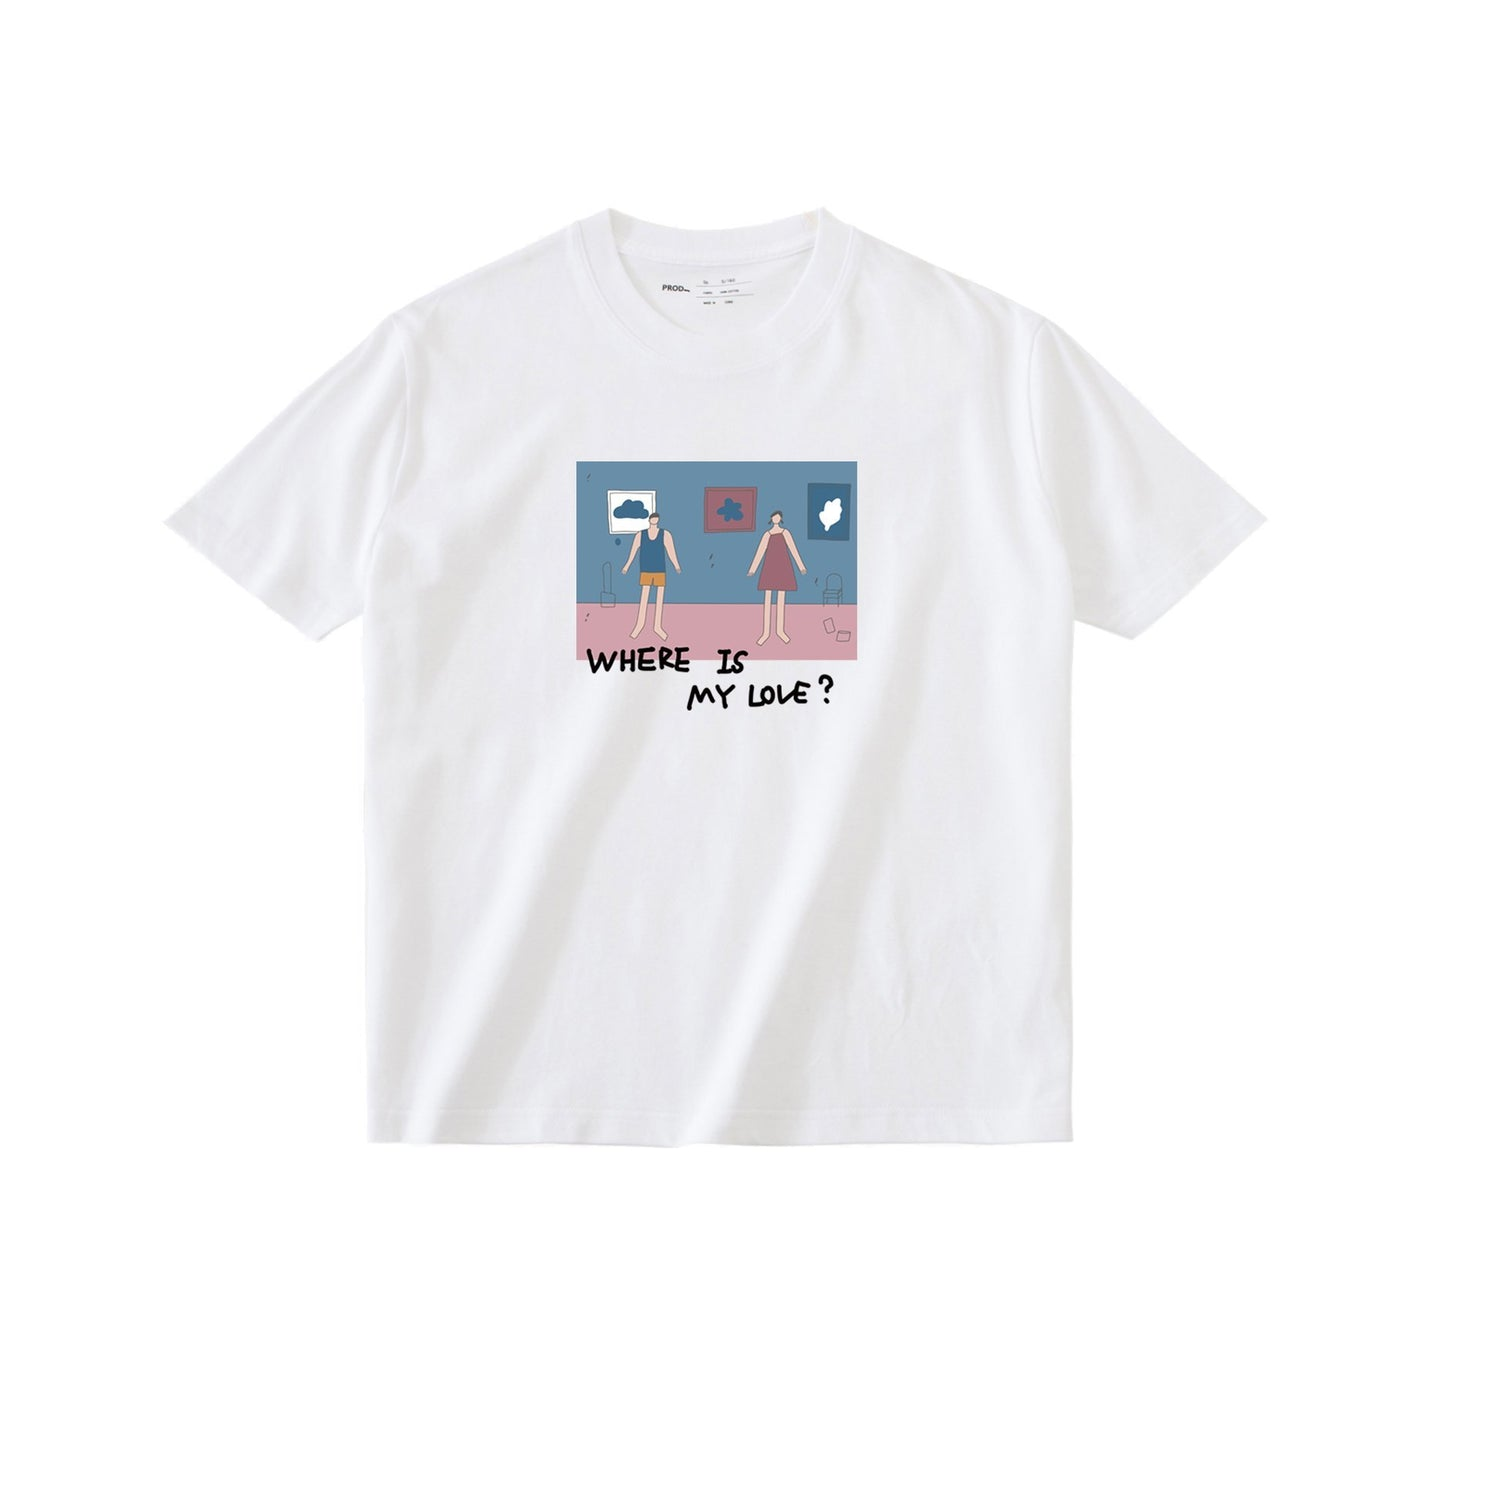 PROD Bldg T Shirt XS / White Where is Love?